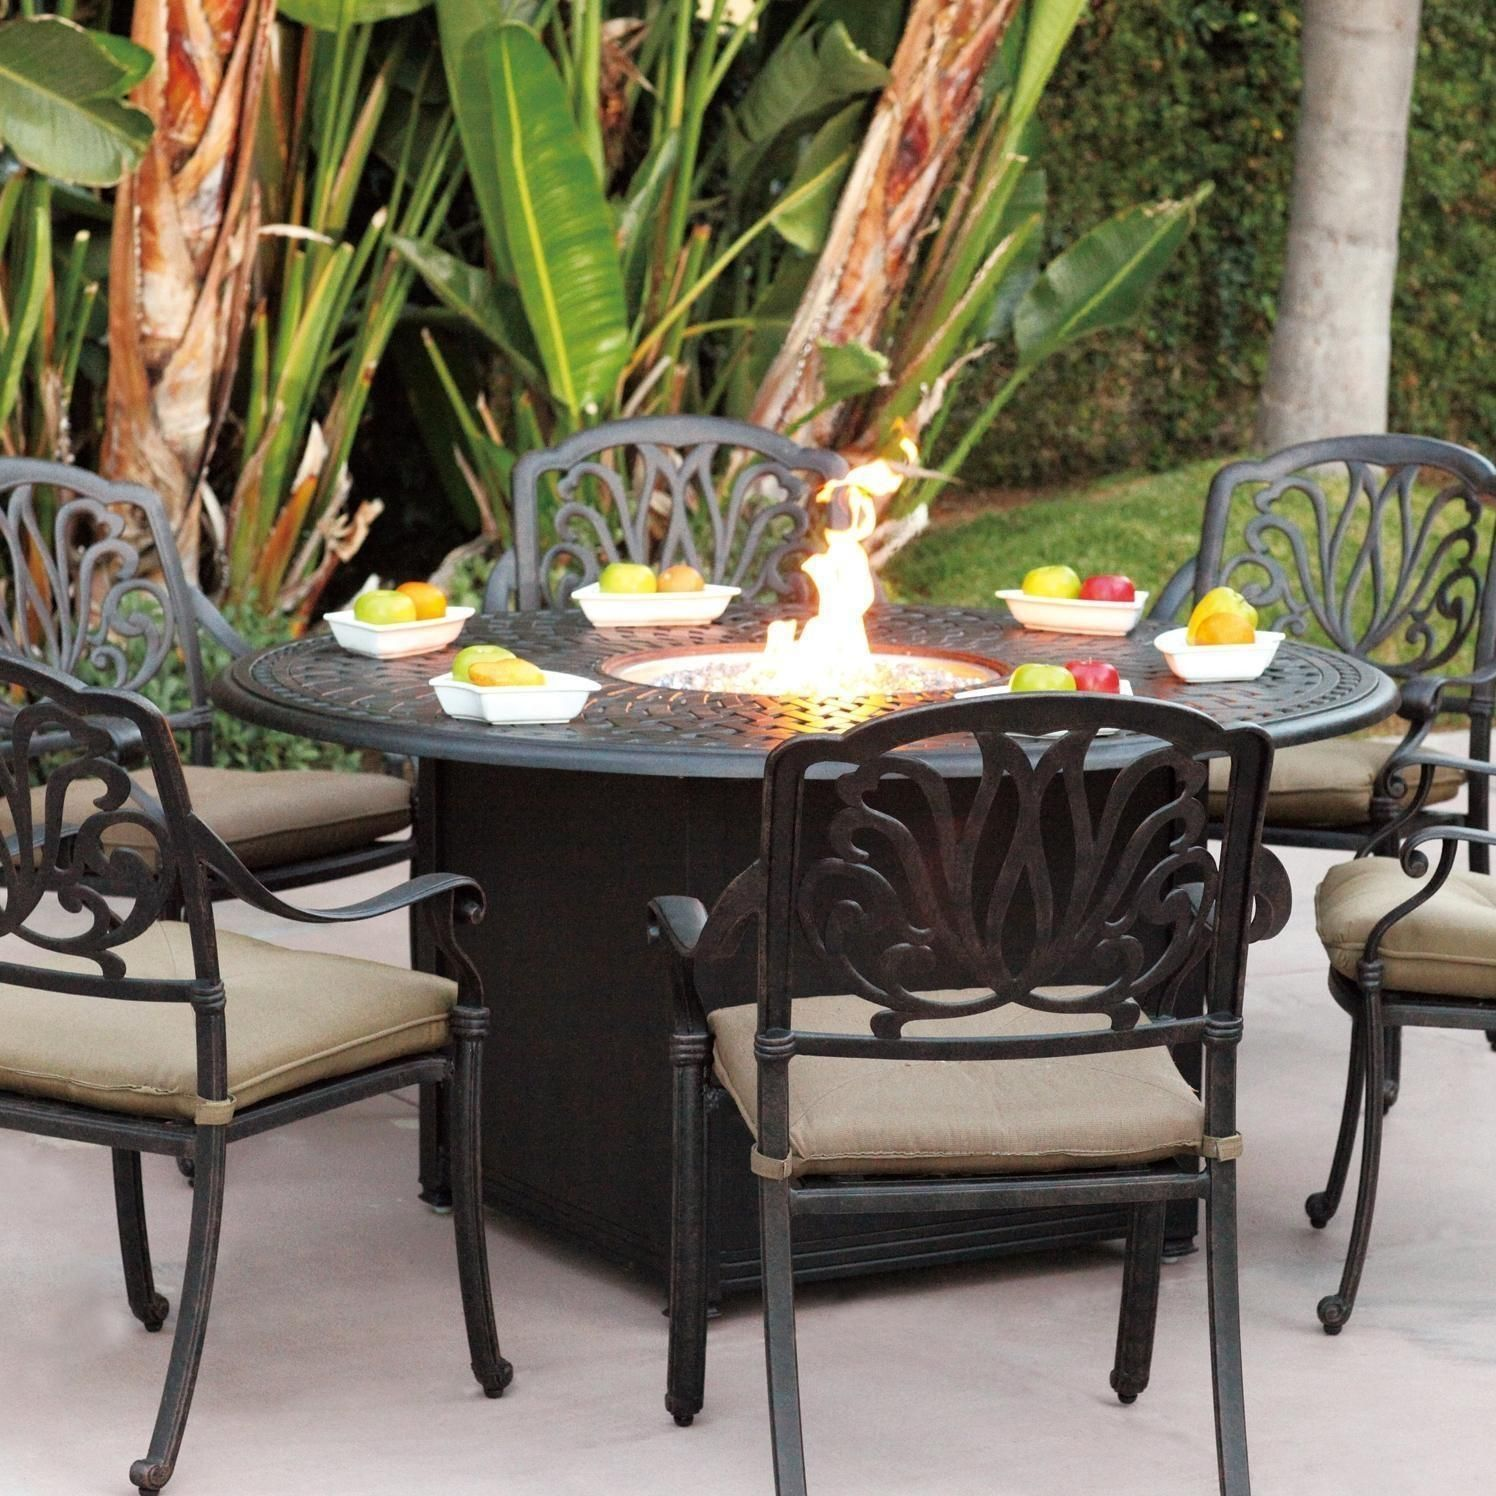 Cool Fire Pit In Garden Fire Pit Dining Set Patio Furniture